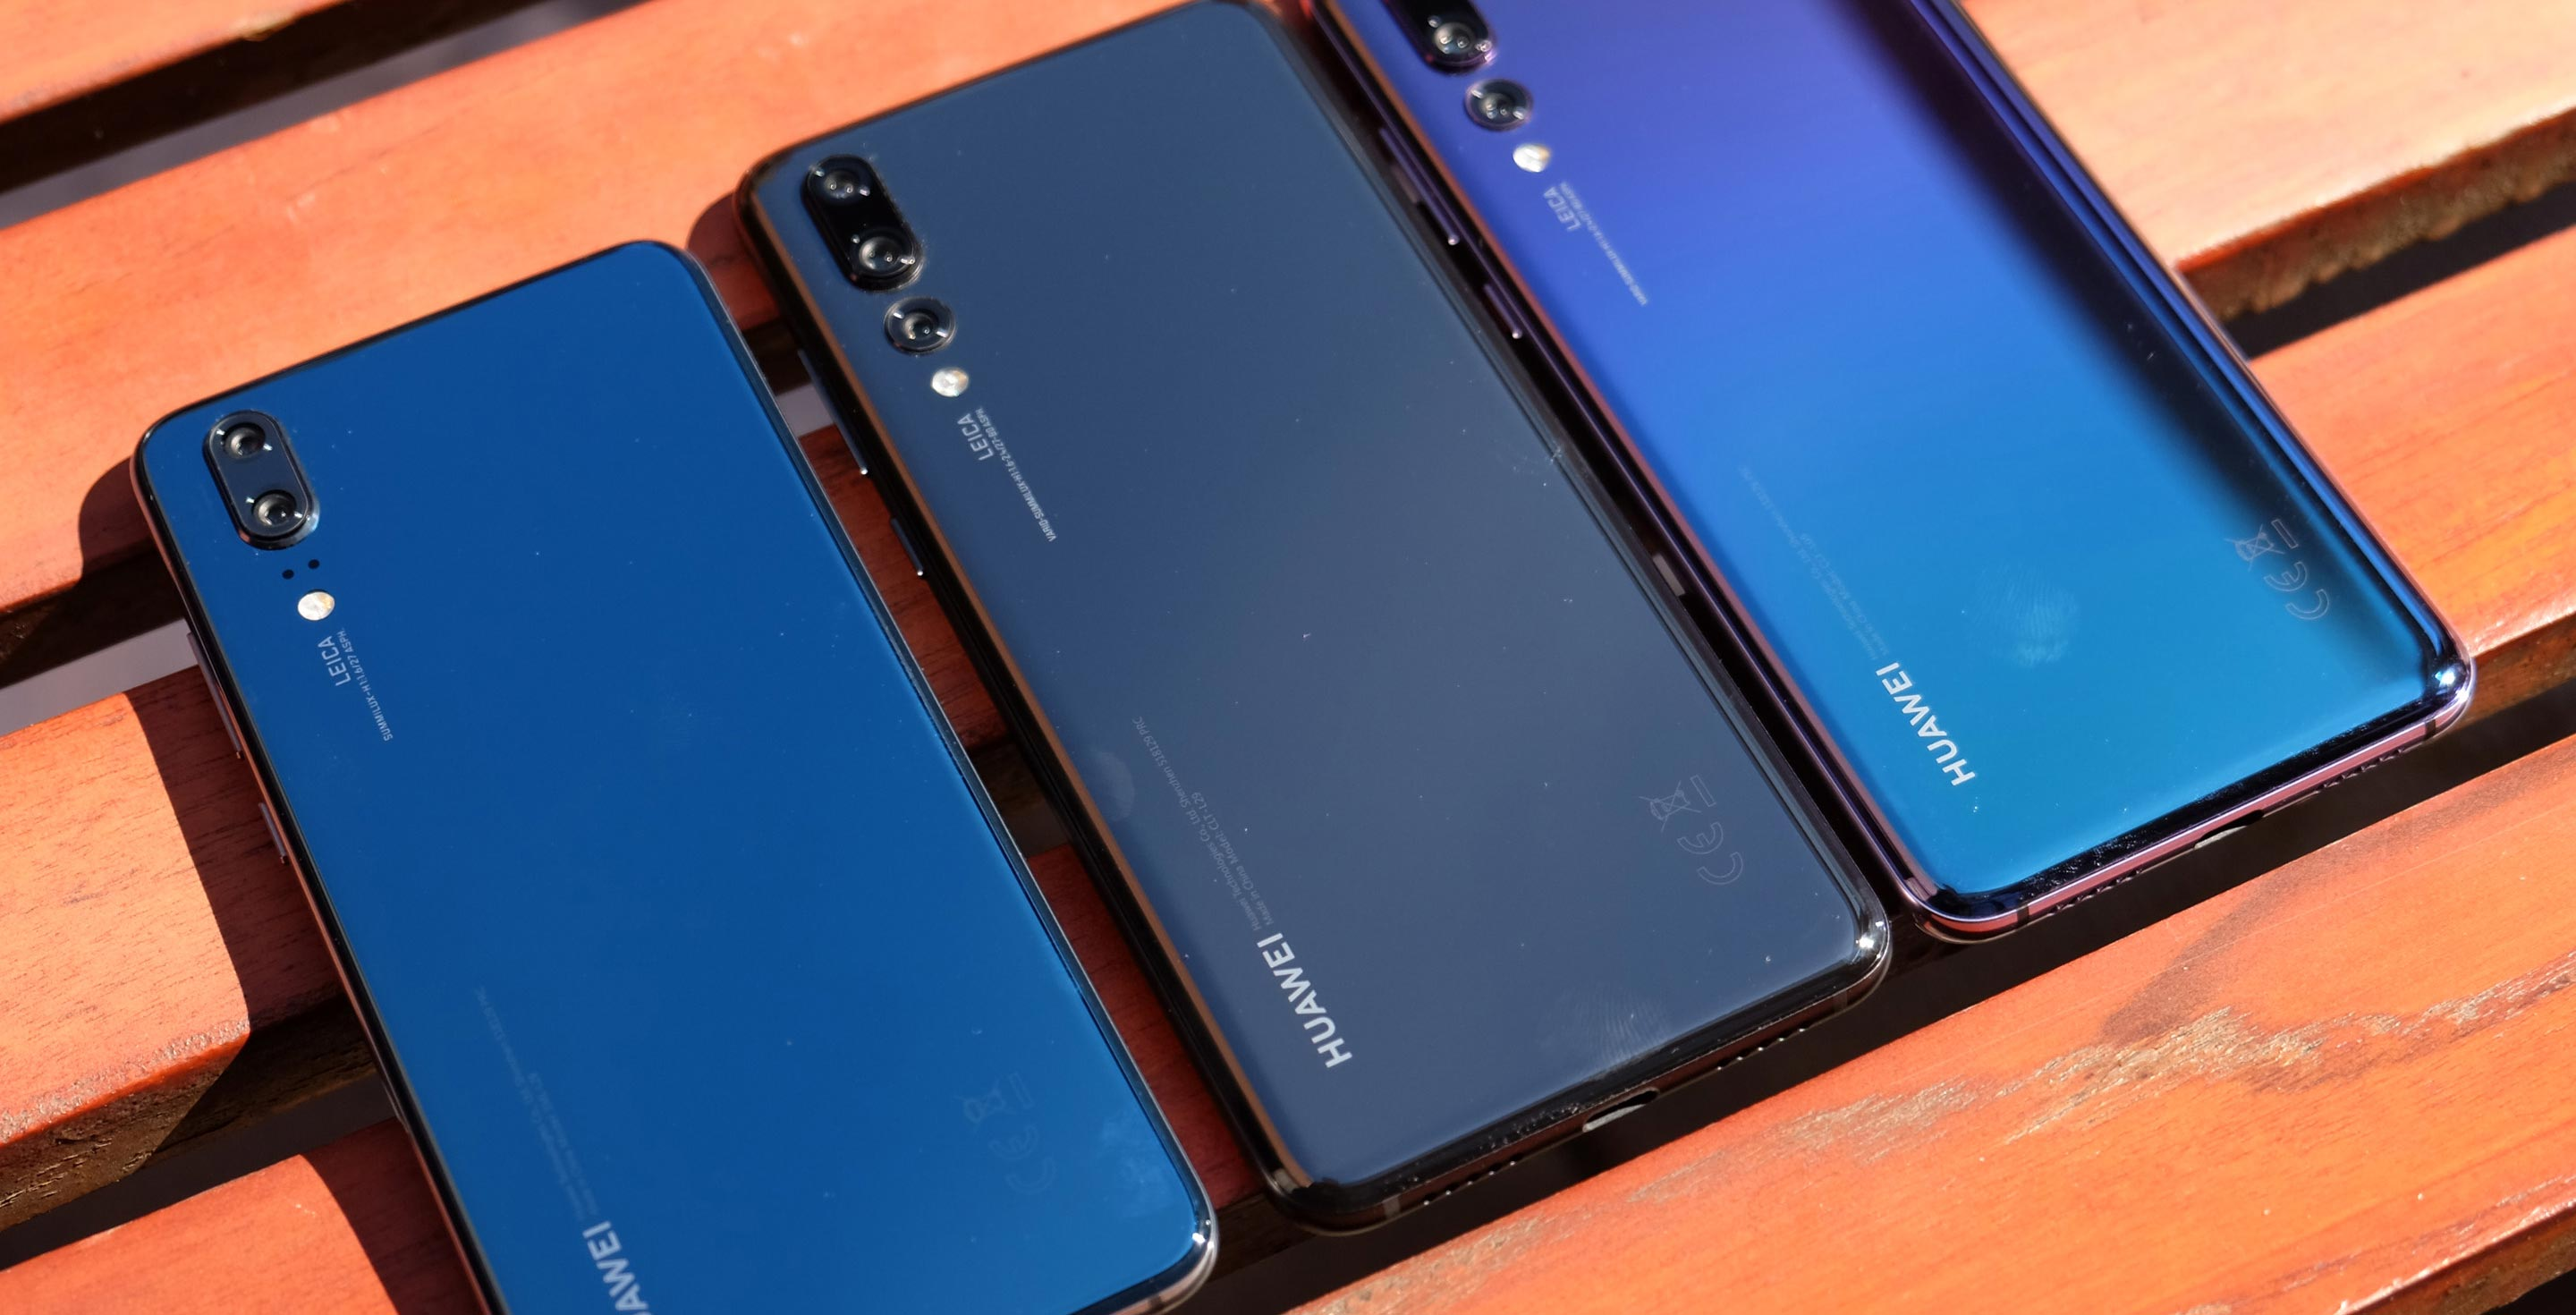 Here's how the Huawei P20 Pro compares to the Google Pixel 2